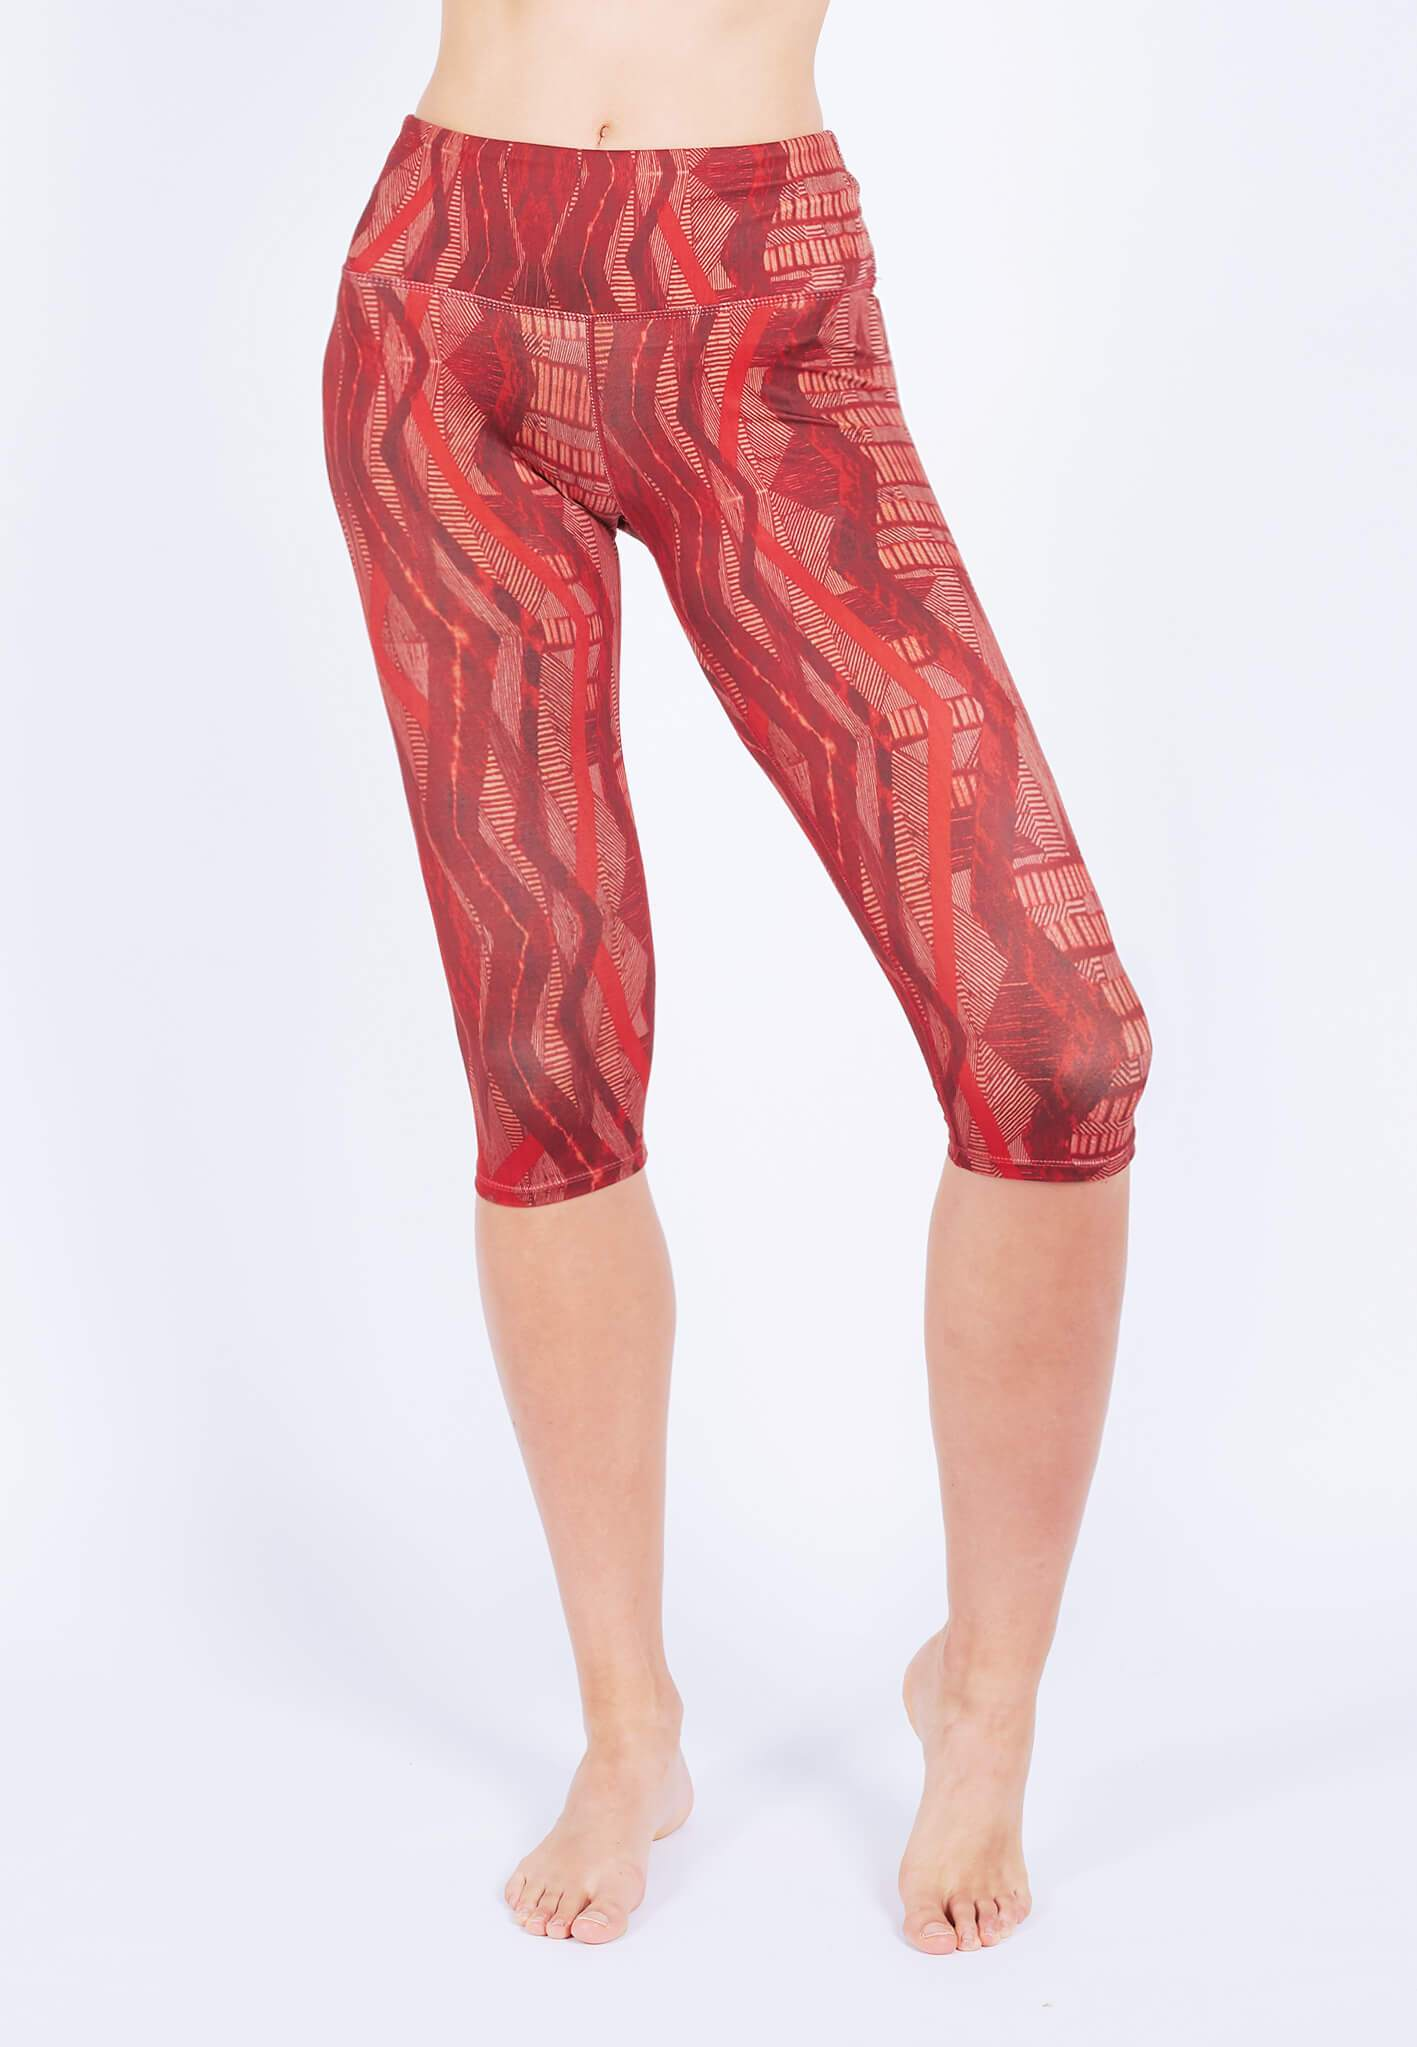 INTENSITY 3/4 Capris (with Keeperband®) in Aeneas Print (XS - 2XL)